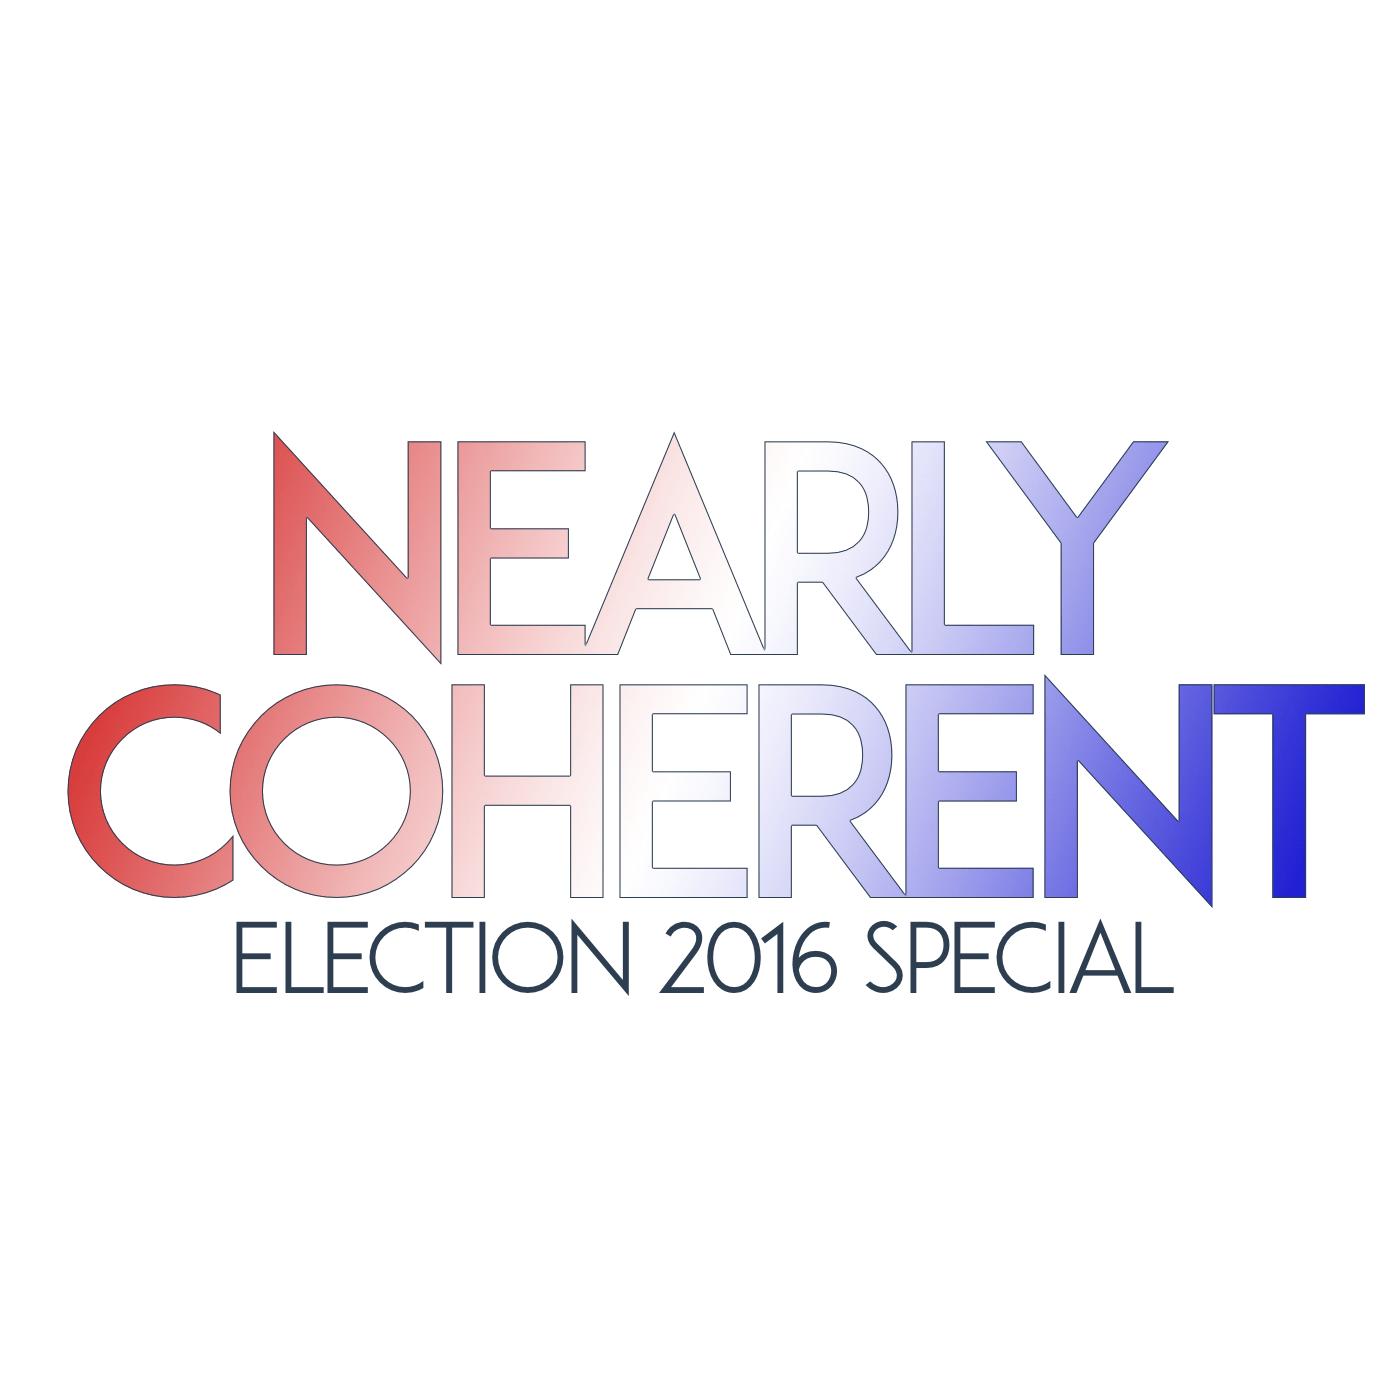 Nearly Coherent Election 2016 Special